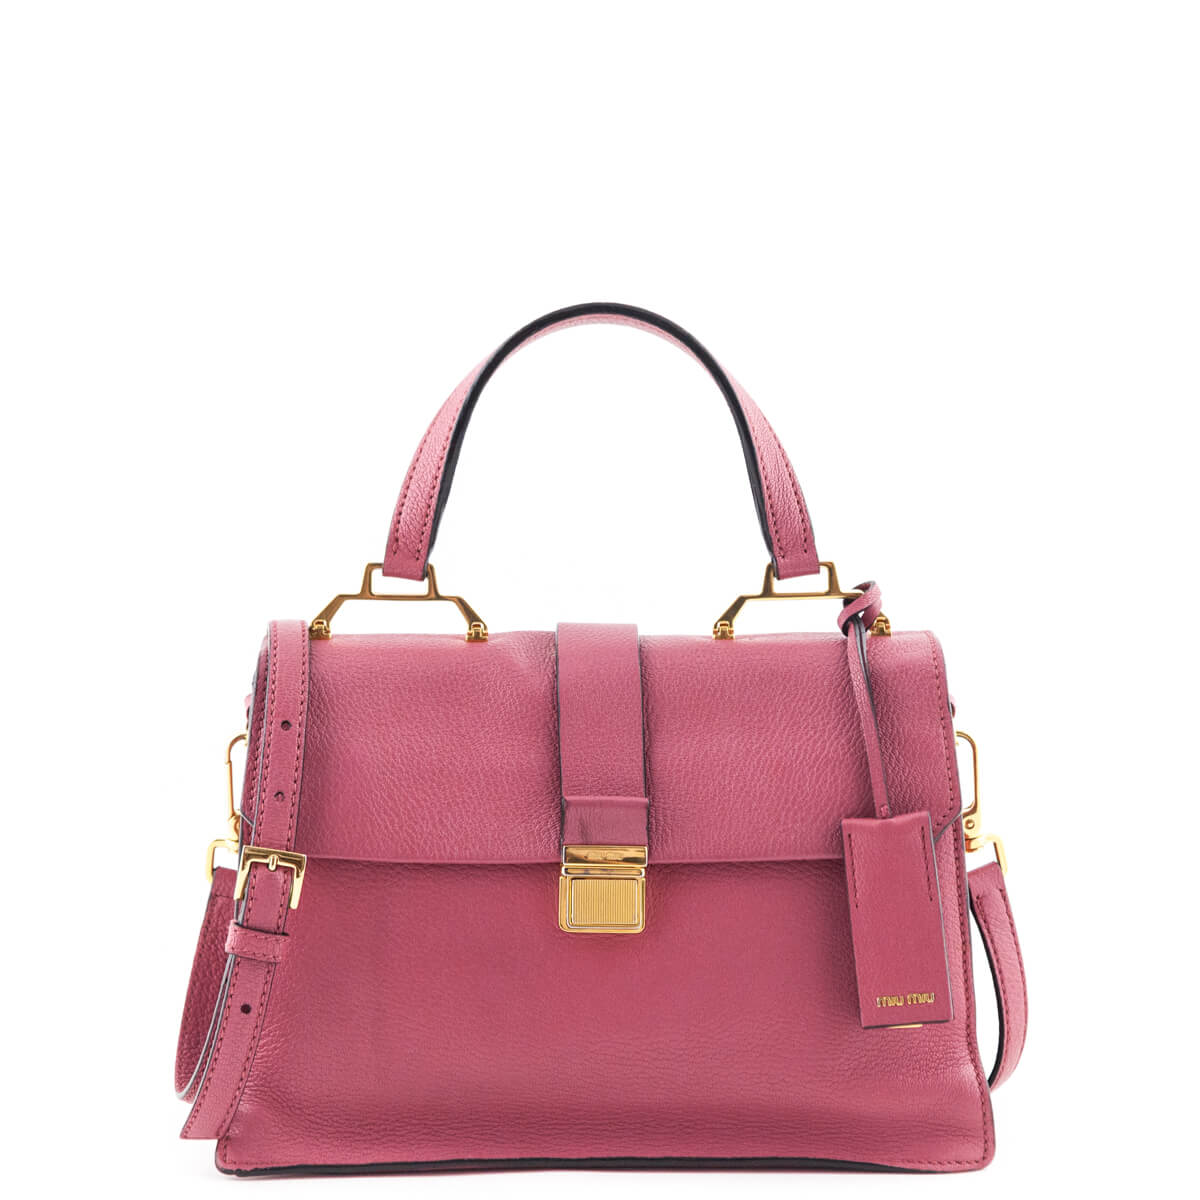 Miu Miu Bruyere Textured Madras Top Handle - LOVE that BAG - Preowned  Authentic Designer Handbags ... 16c782f1bc4cd